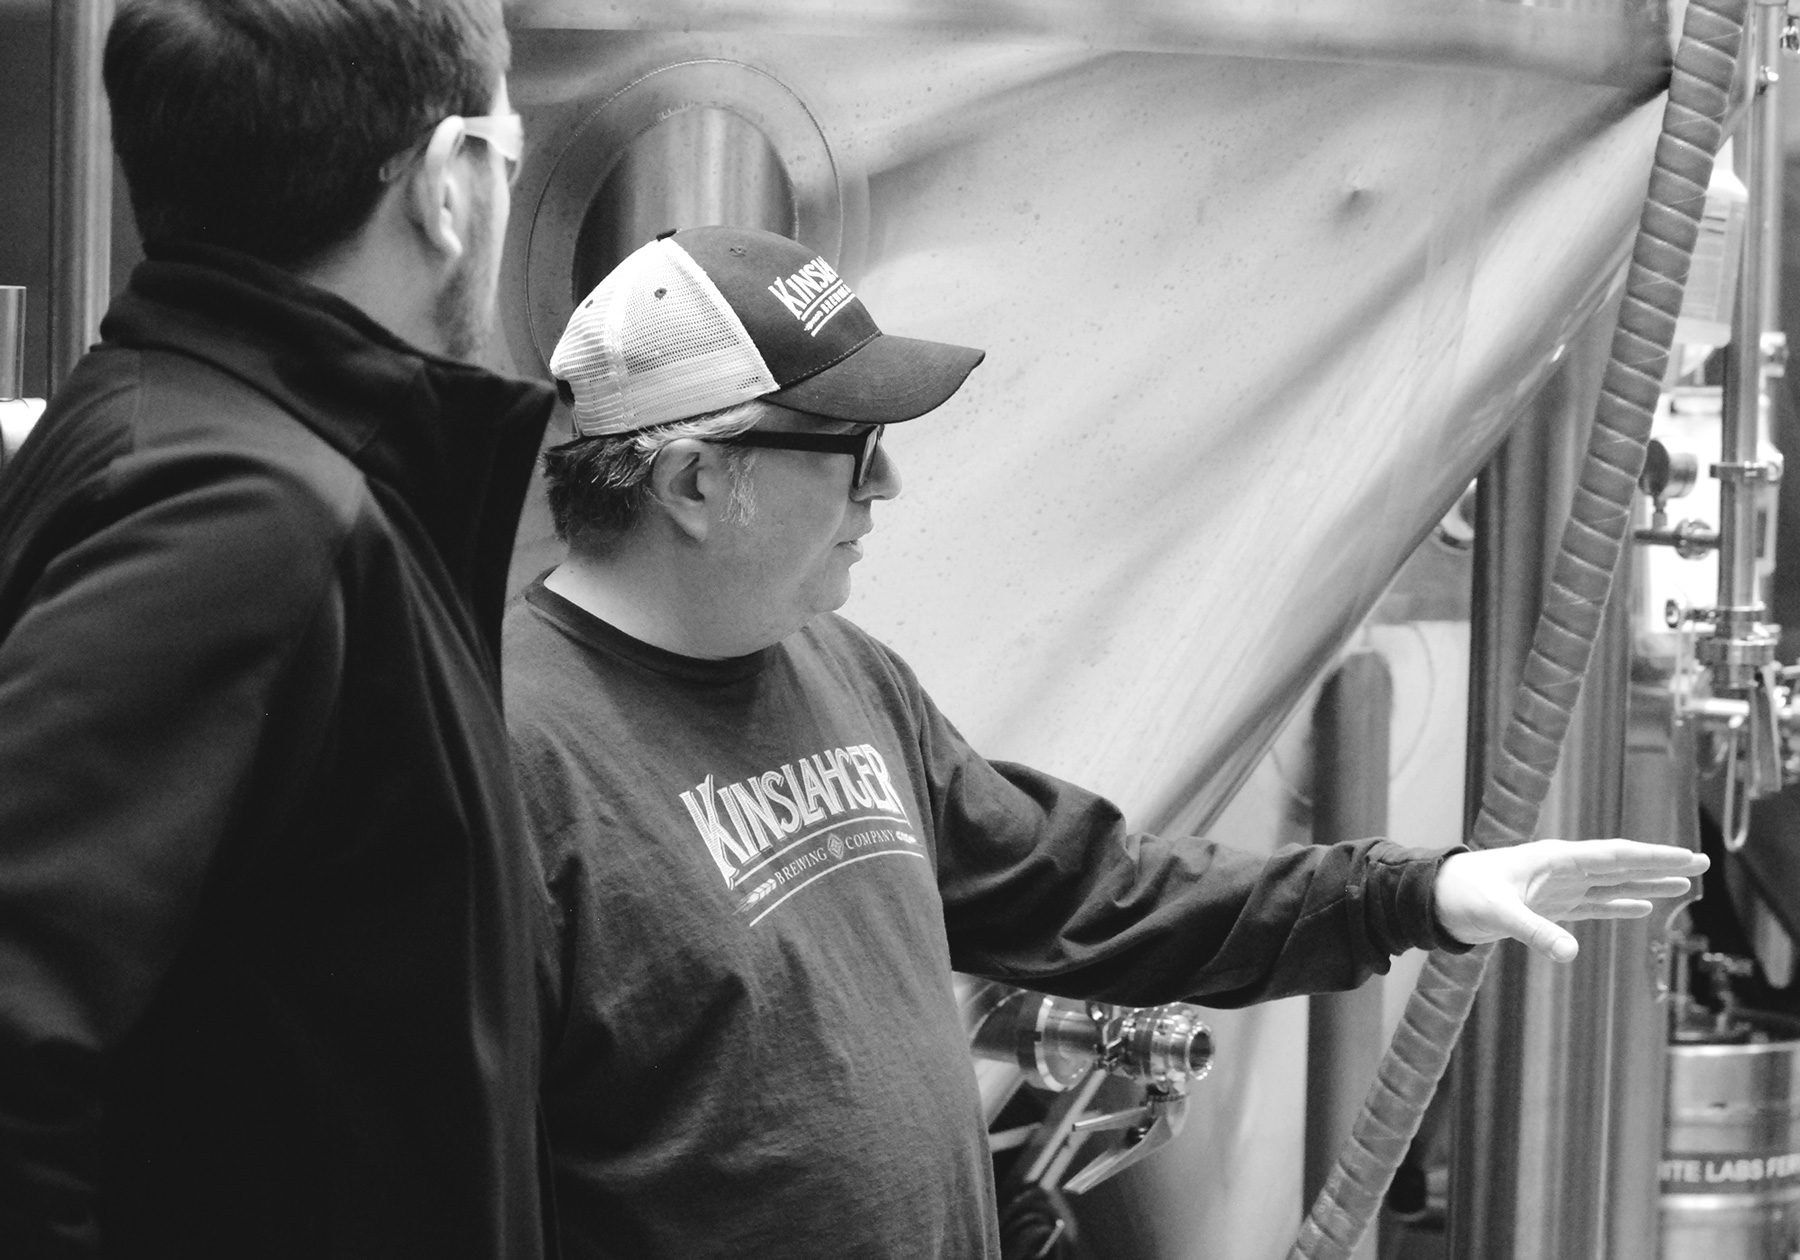 Co-Founder and brewer, Steve Loranz, speaks to the brewhouse setup on Roosevelt St.